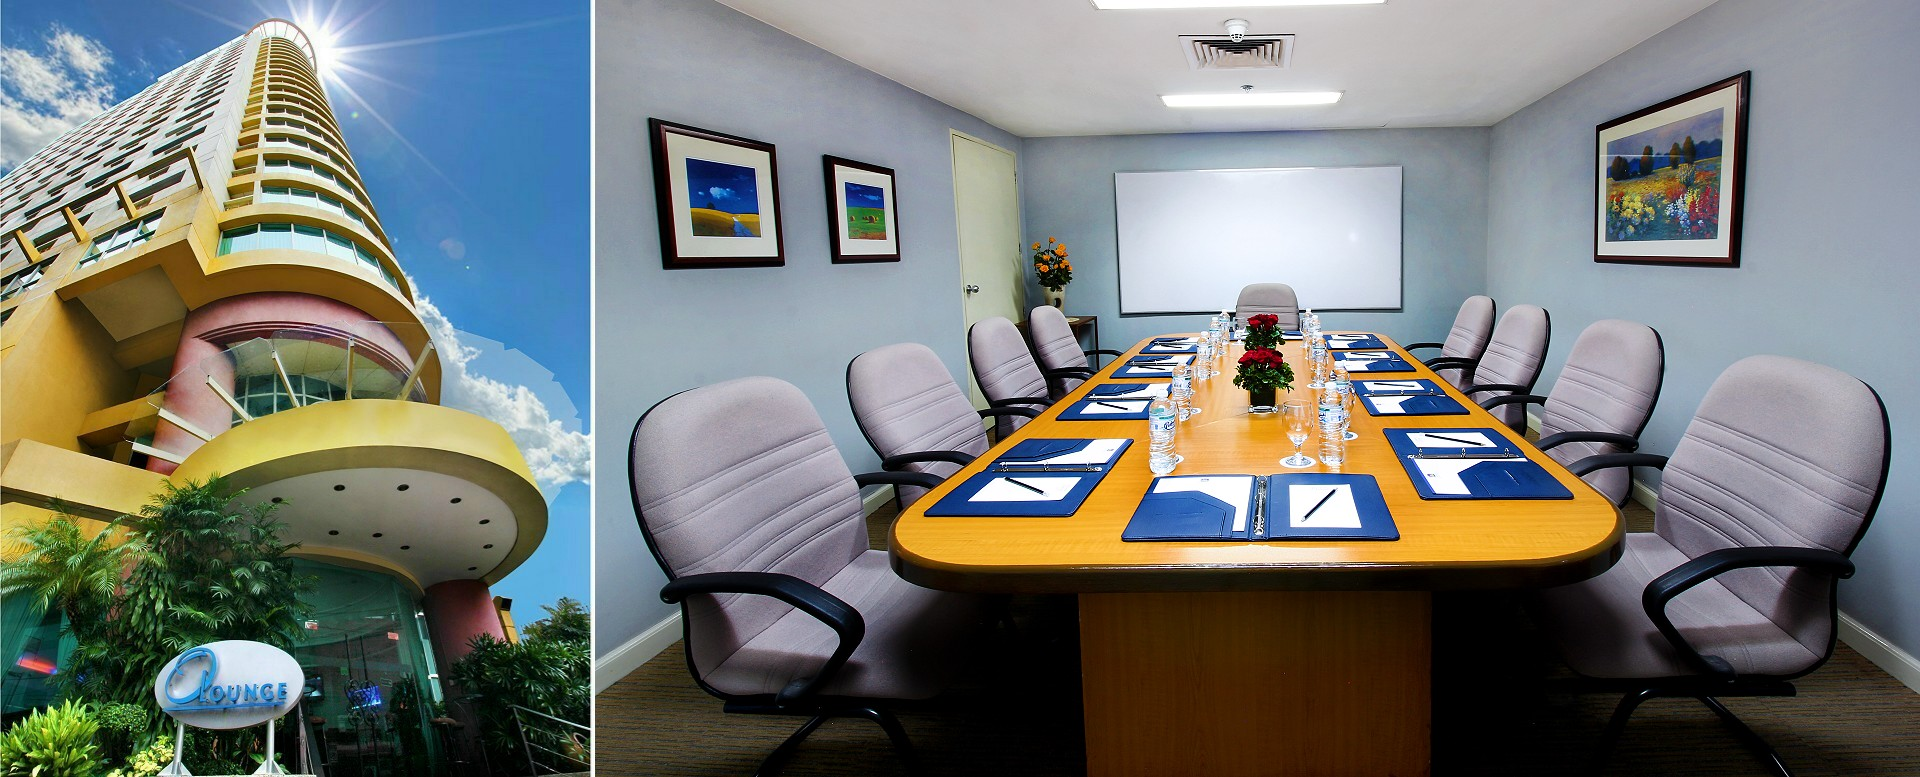 Best Western Oxford Suites - Board Room new